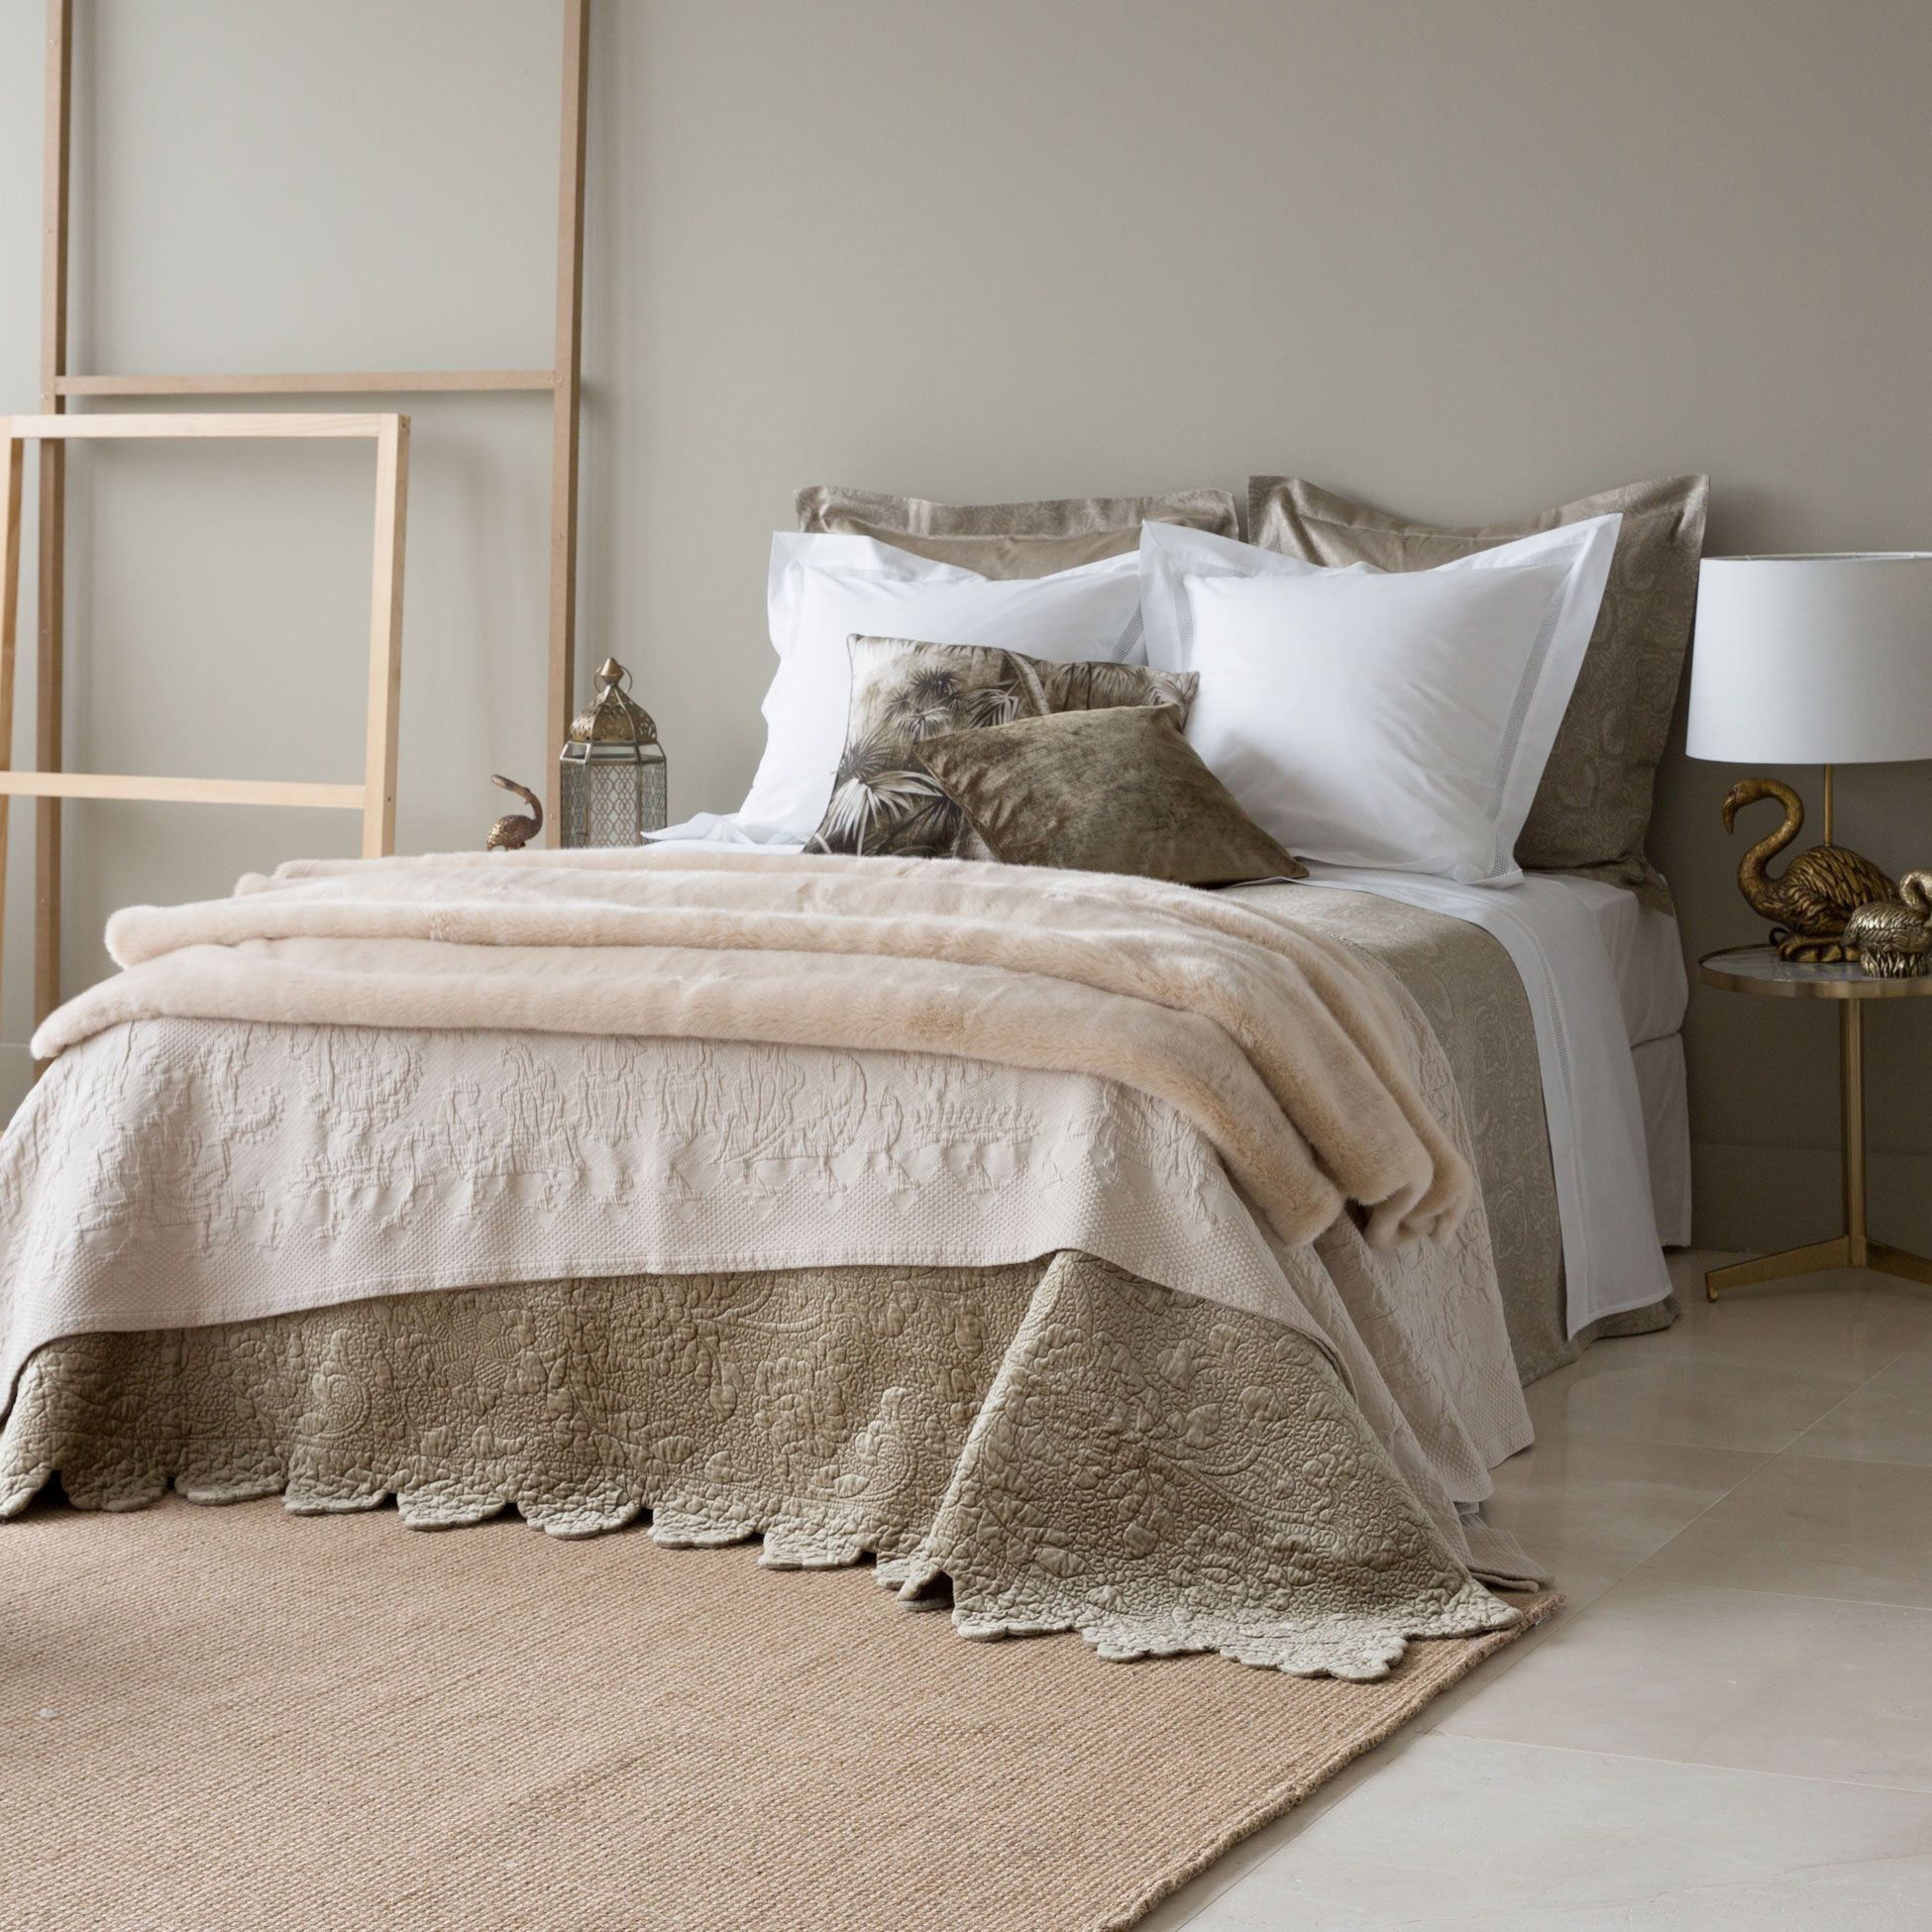 Bedspread and cushion cover with embroidered leaves for Zara home bedroom ideas